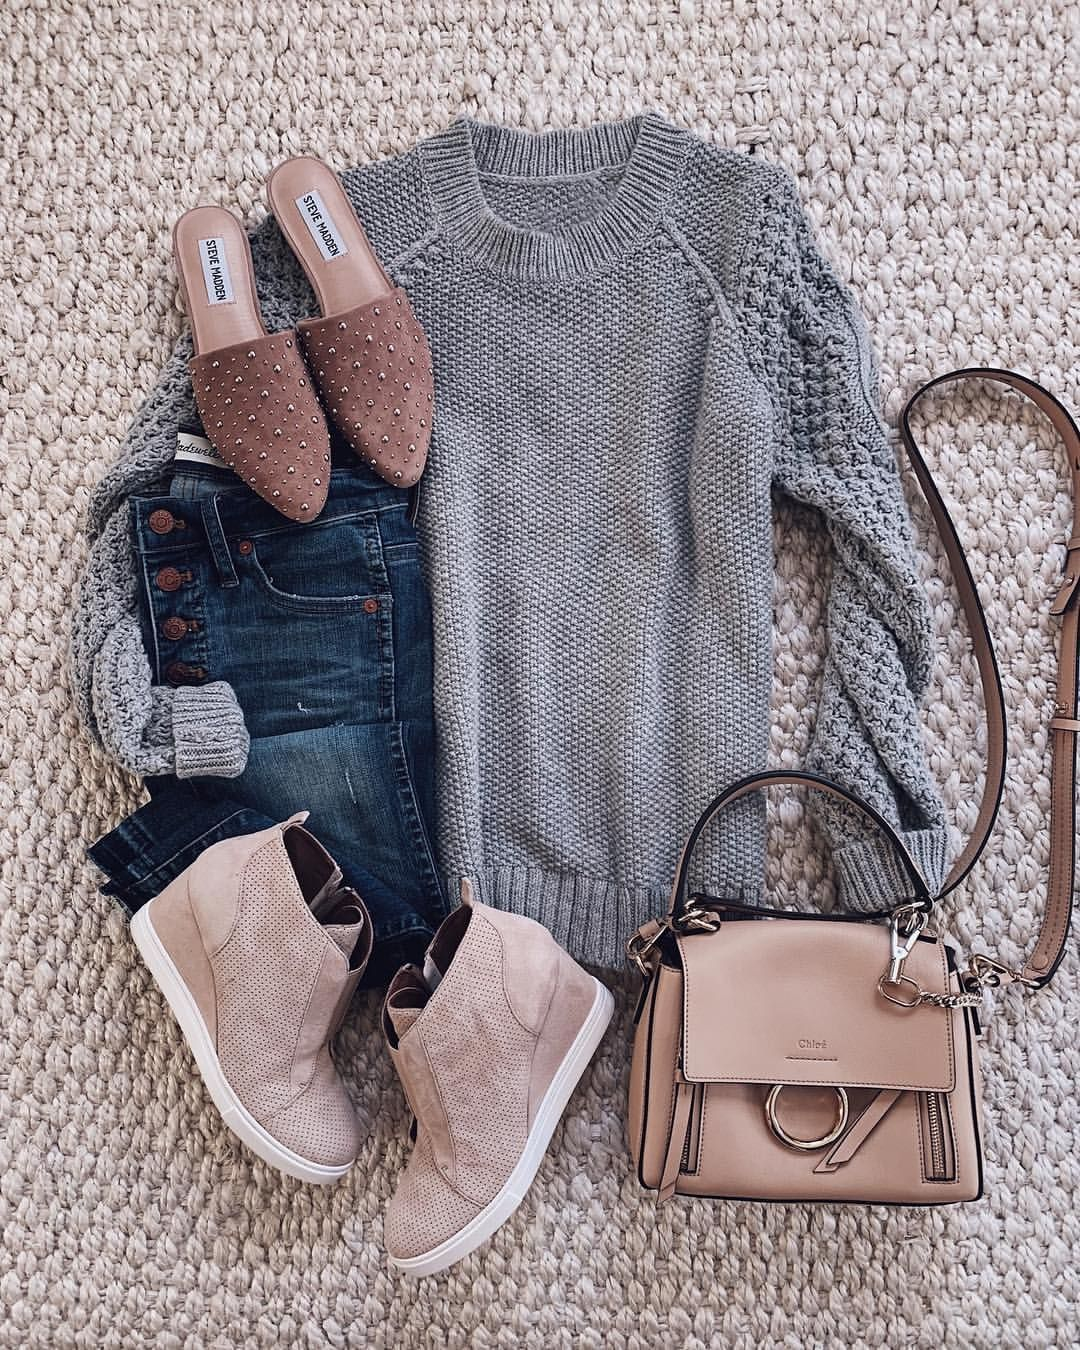 5280056a16f81 Both shoes! Errands and an event. Simple jeans and sweater are cute ...